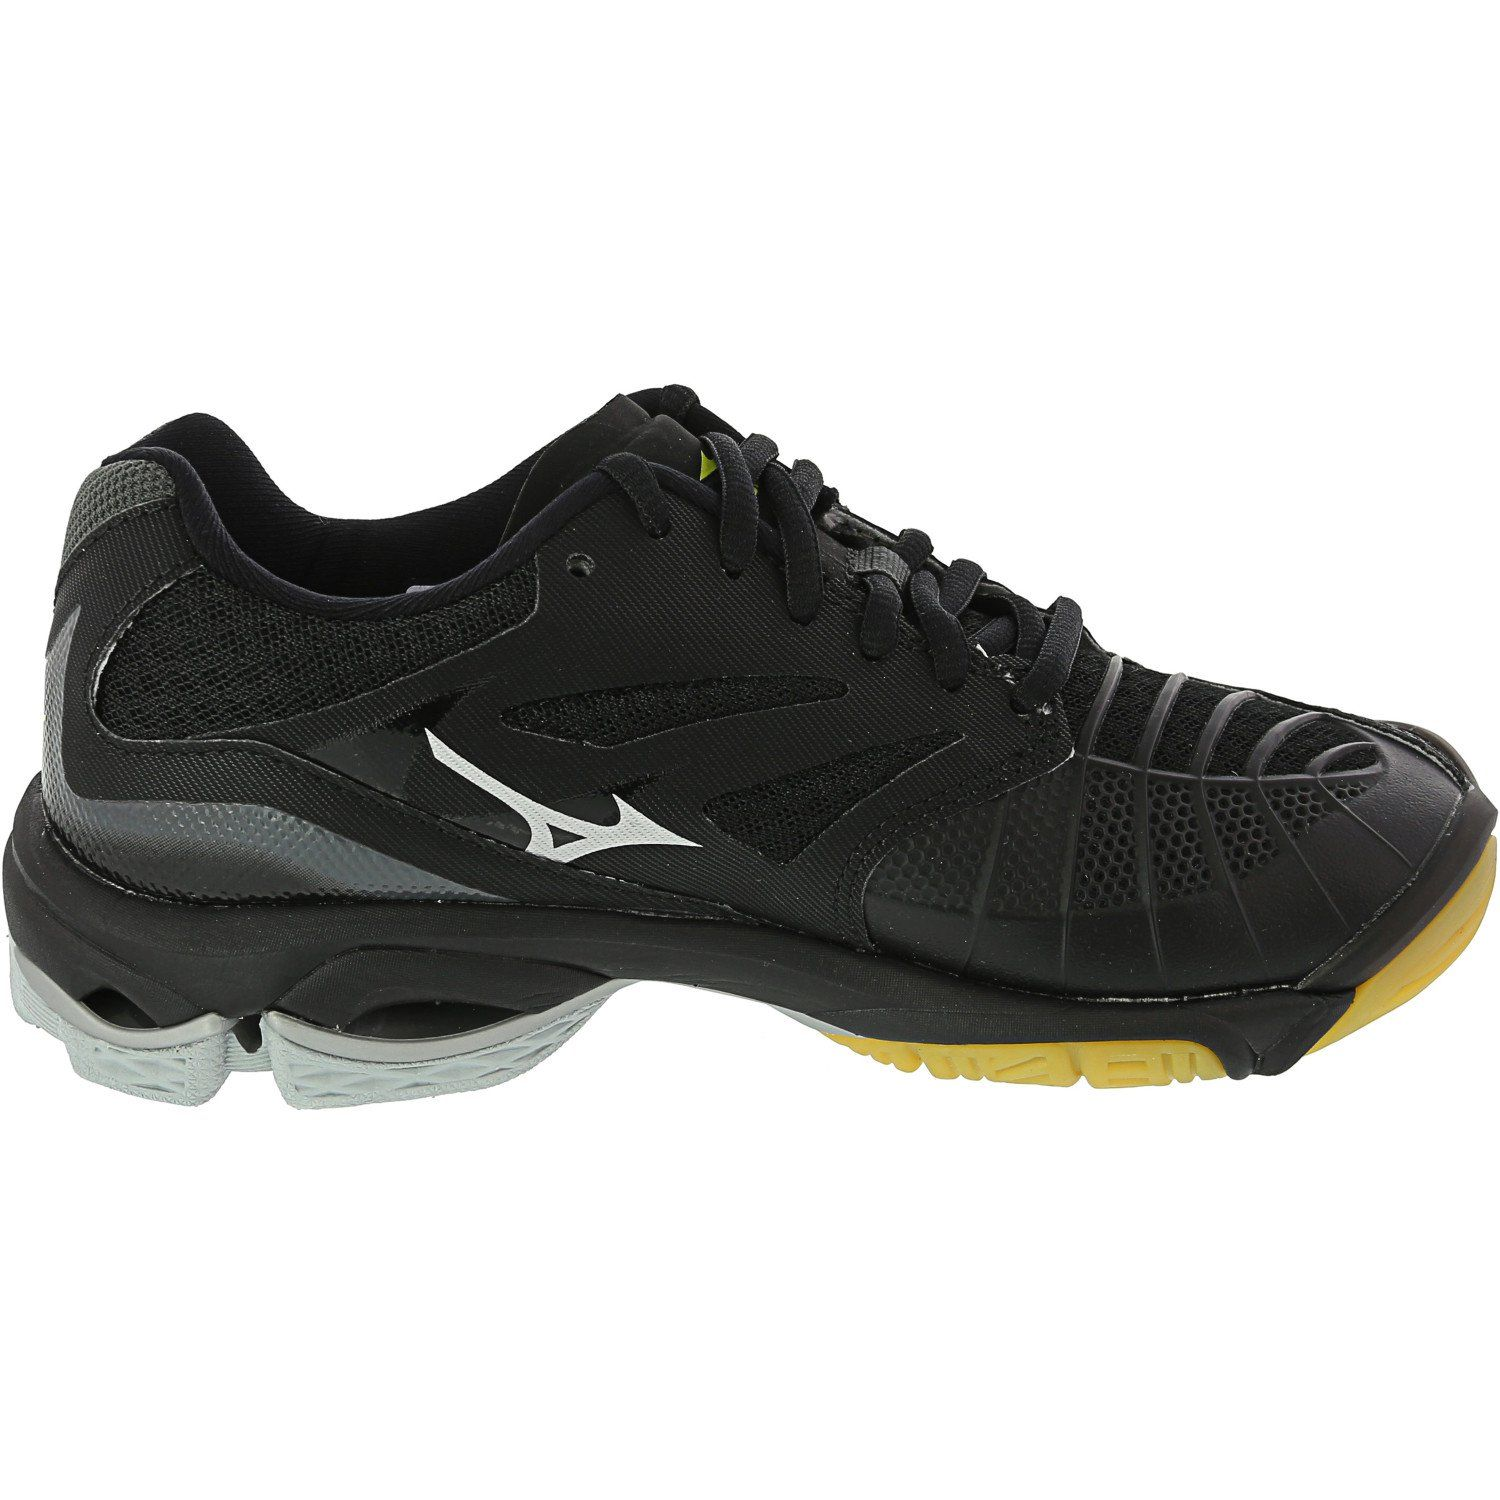 Mizuno Wave Lightning Z3 Volleyball Shoe Ad Spon Lightning Wave Mizuno Volleyball Shoes Women Shoes Shoes